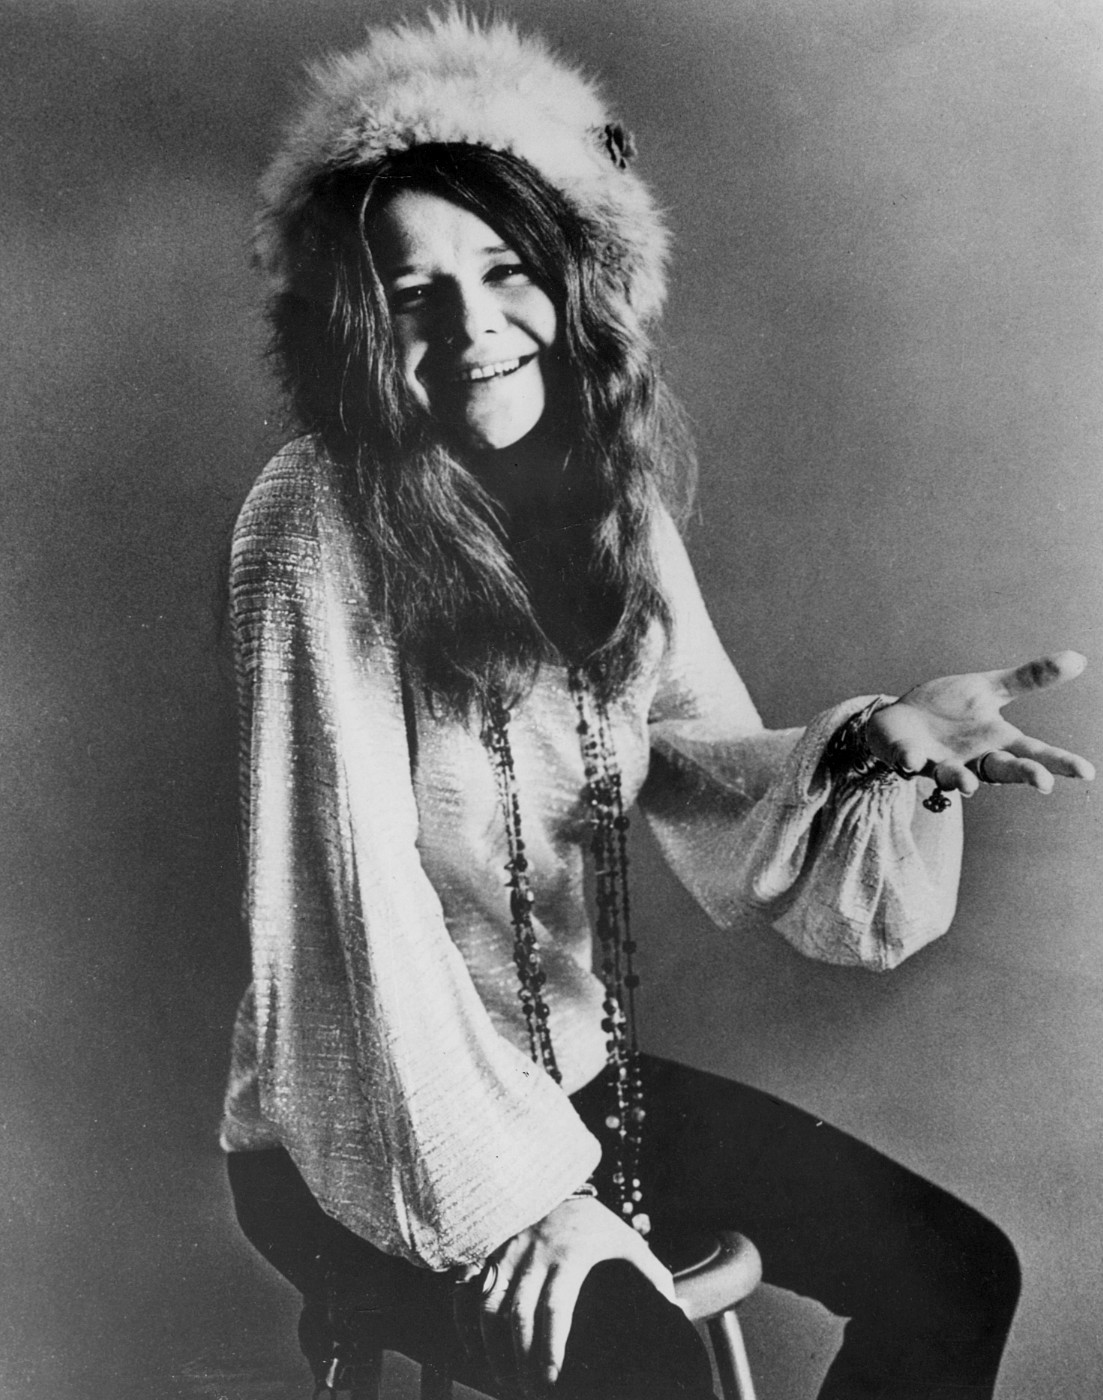 a-guide-to-cool-janis-joplin-folkr-15